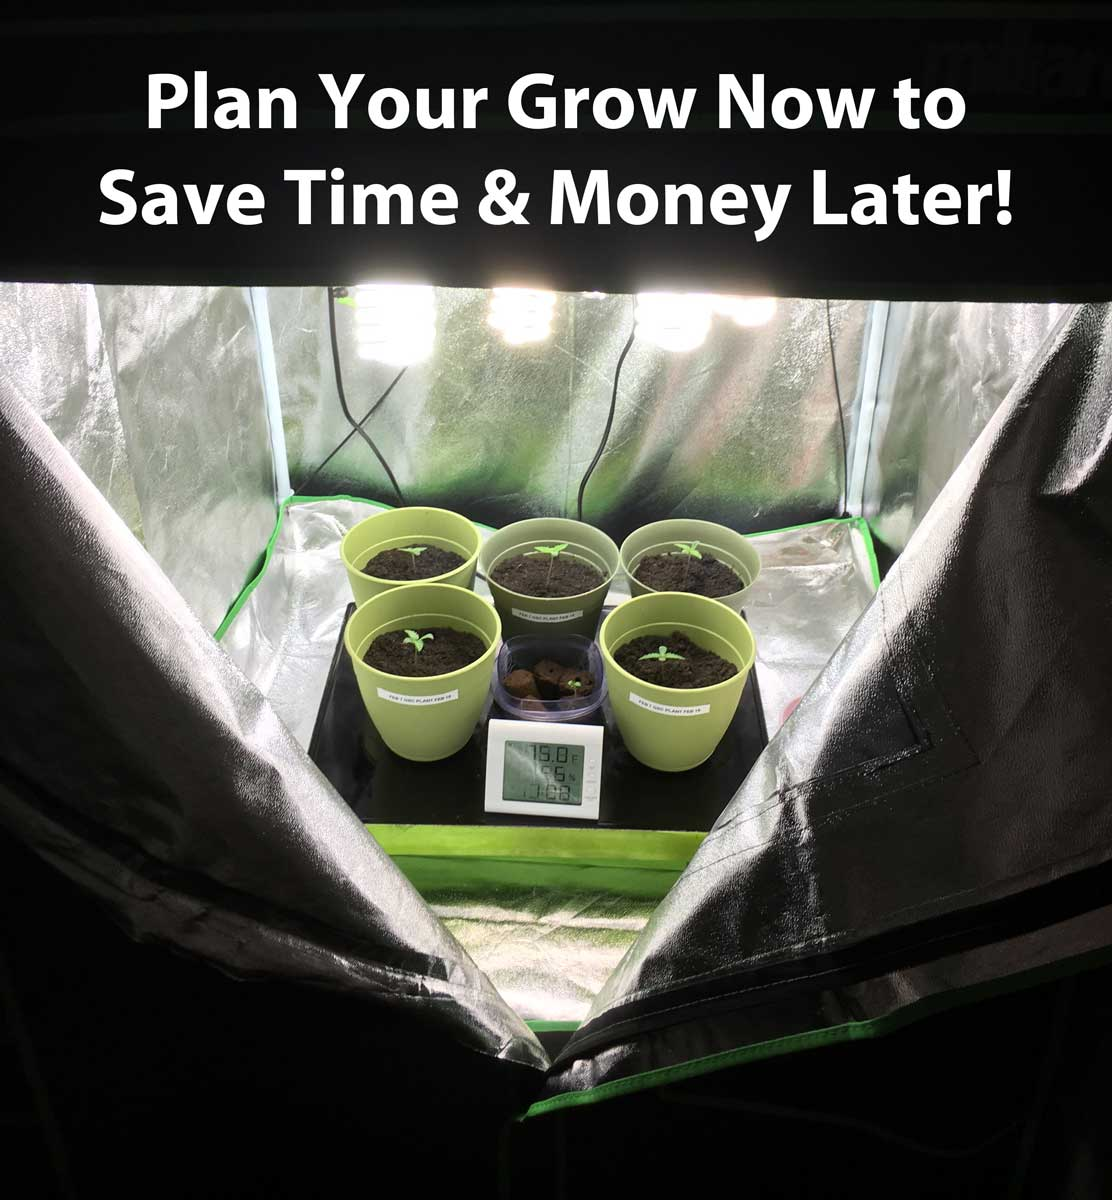 which room in the house is best for growing weed grow weed easy